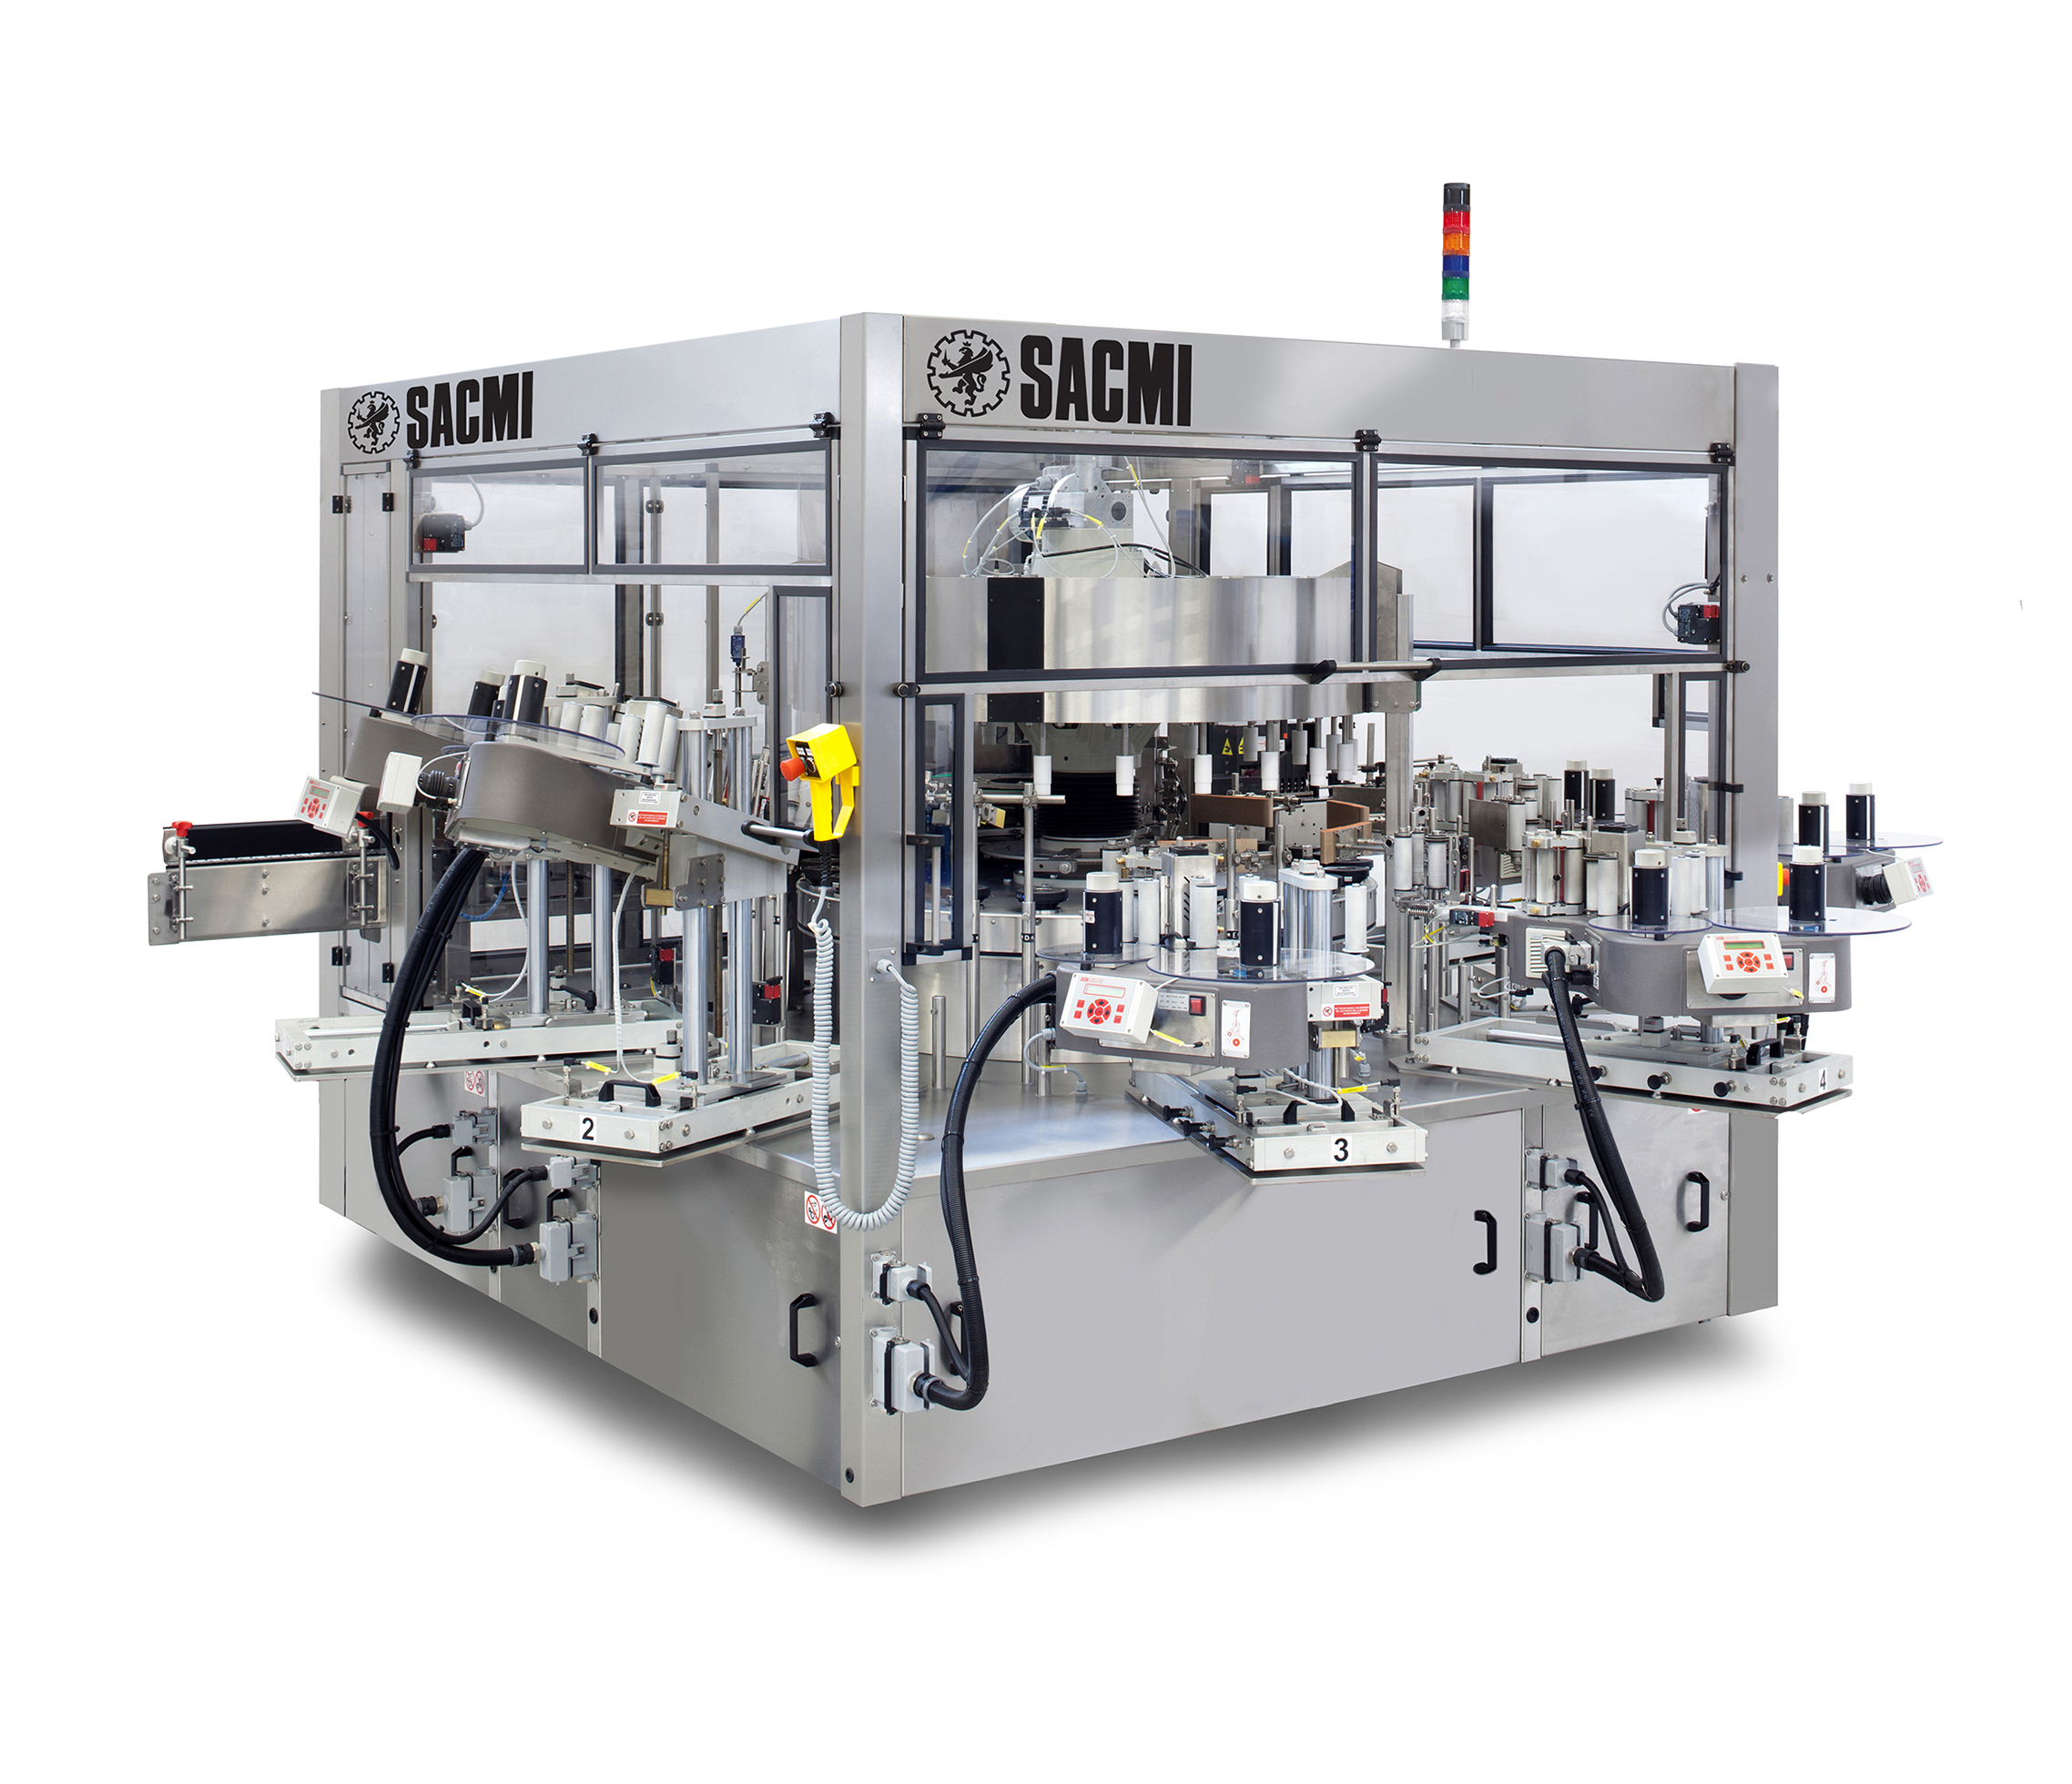 Sacmi presents a new high-speed filling line in China